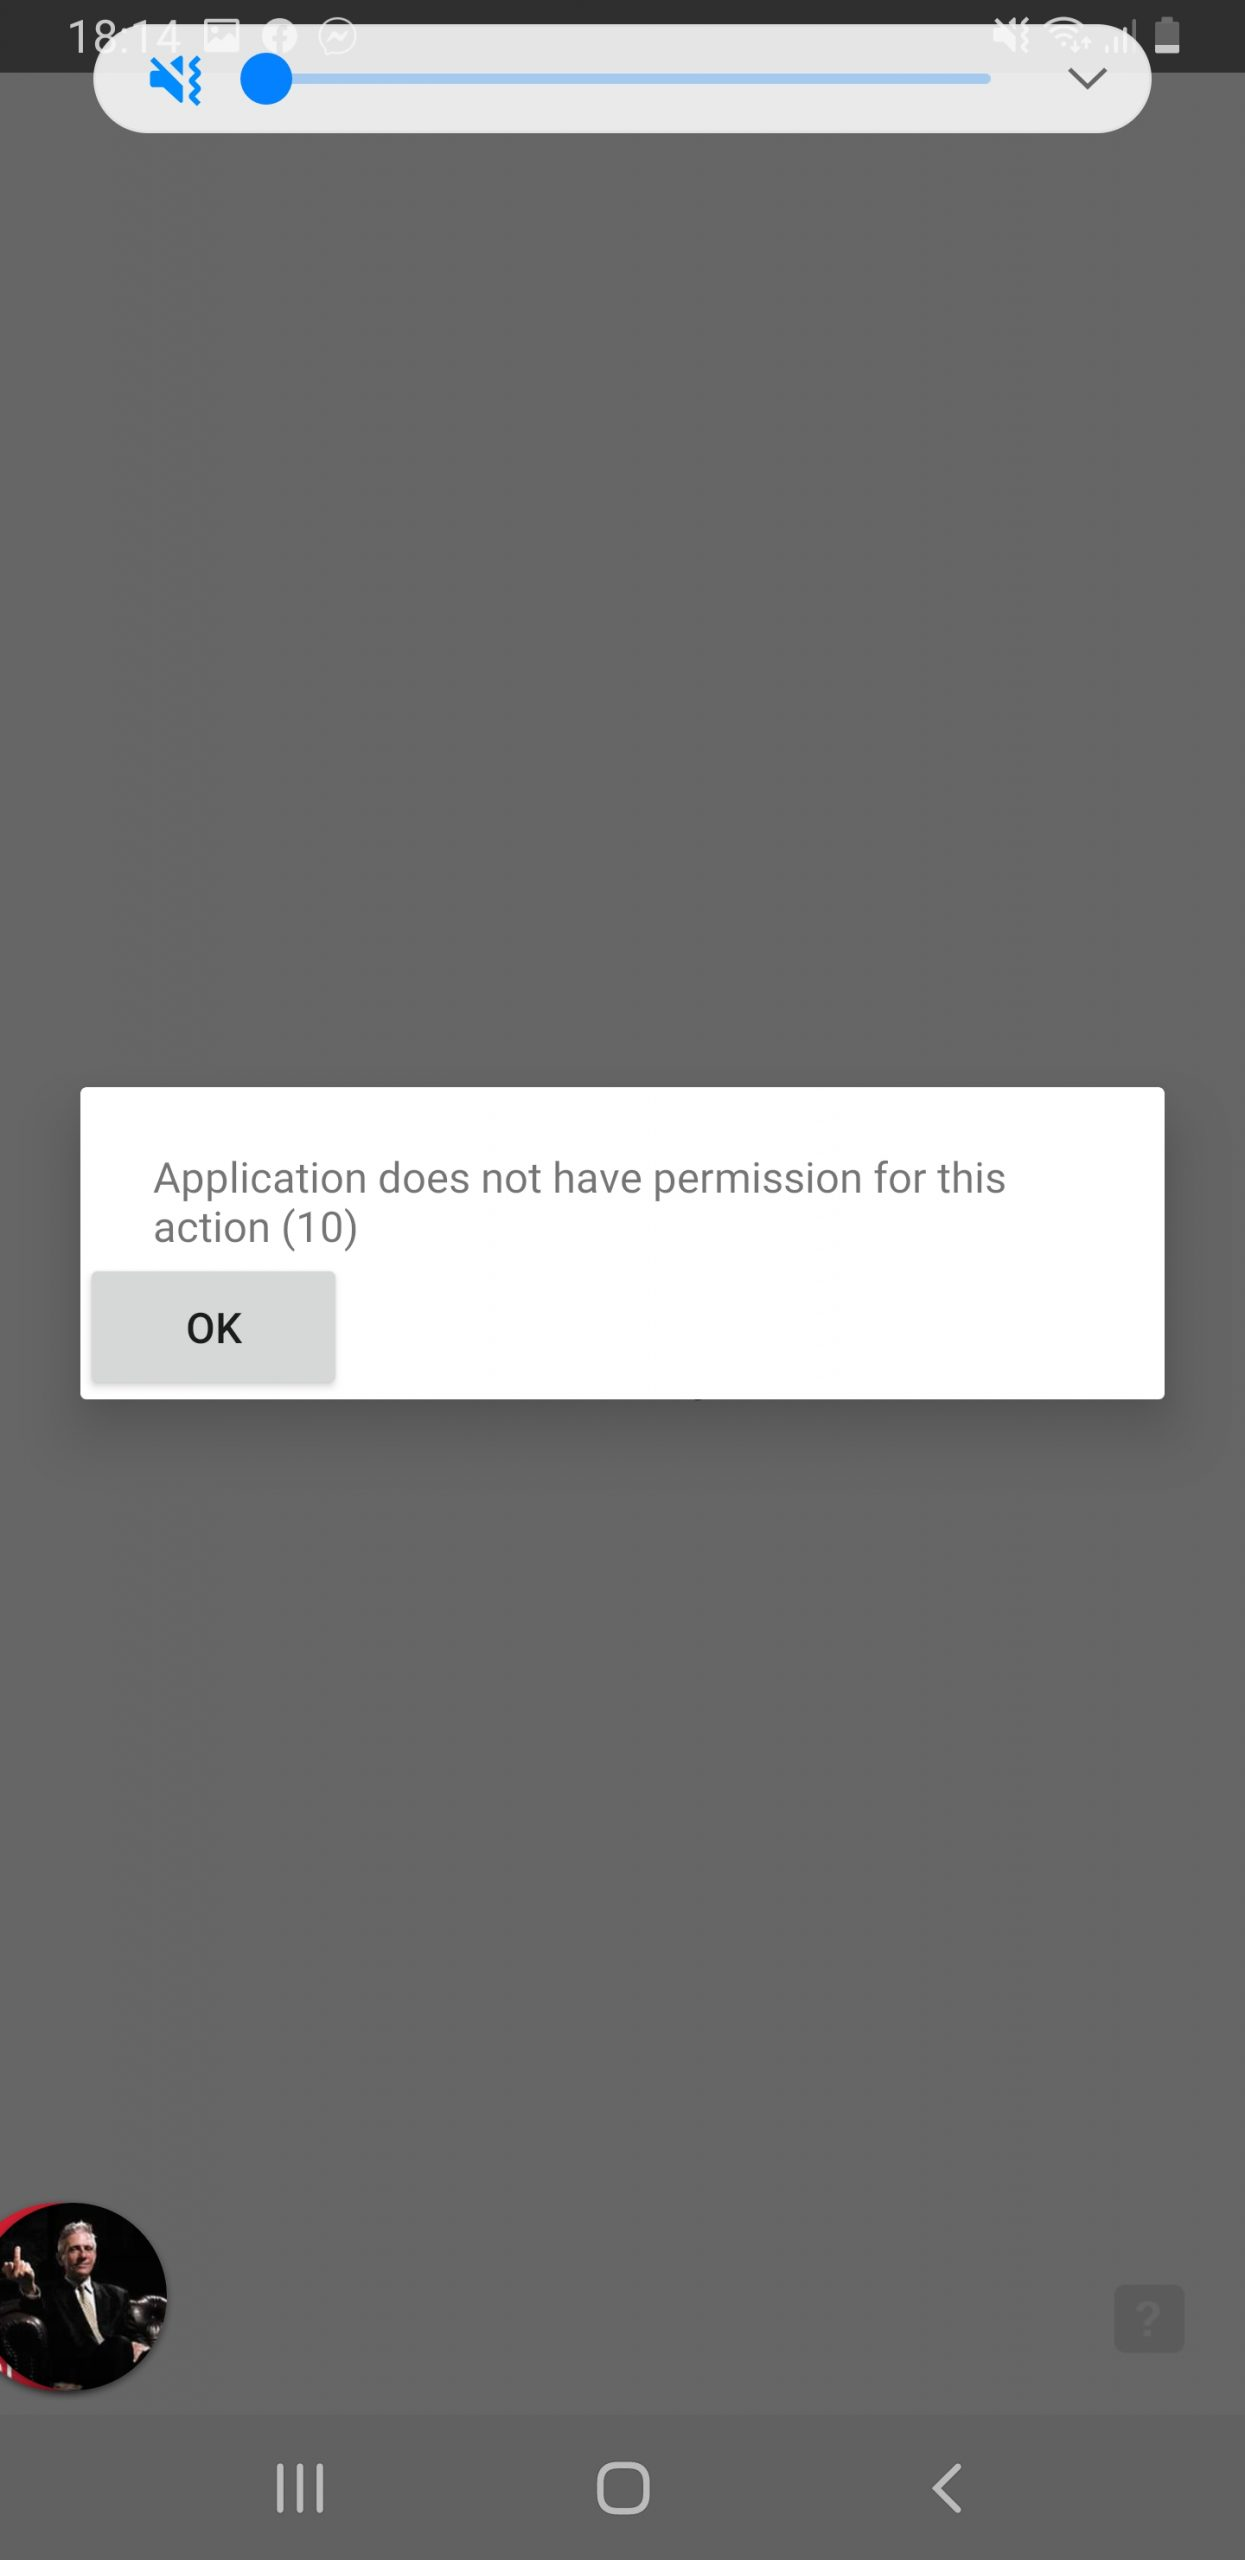 Application does not have permission for this action (10)